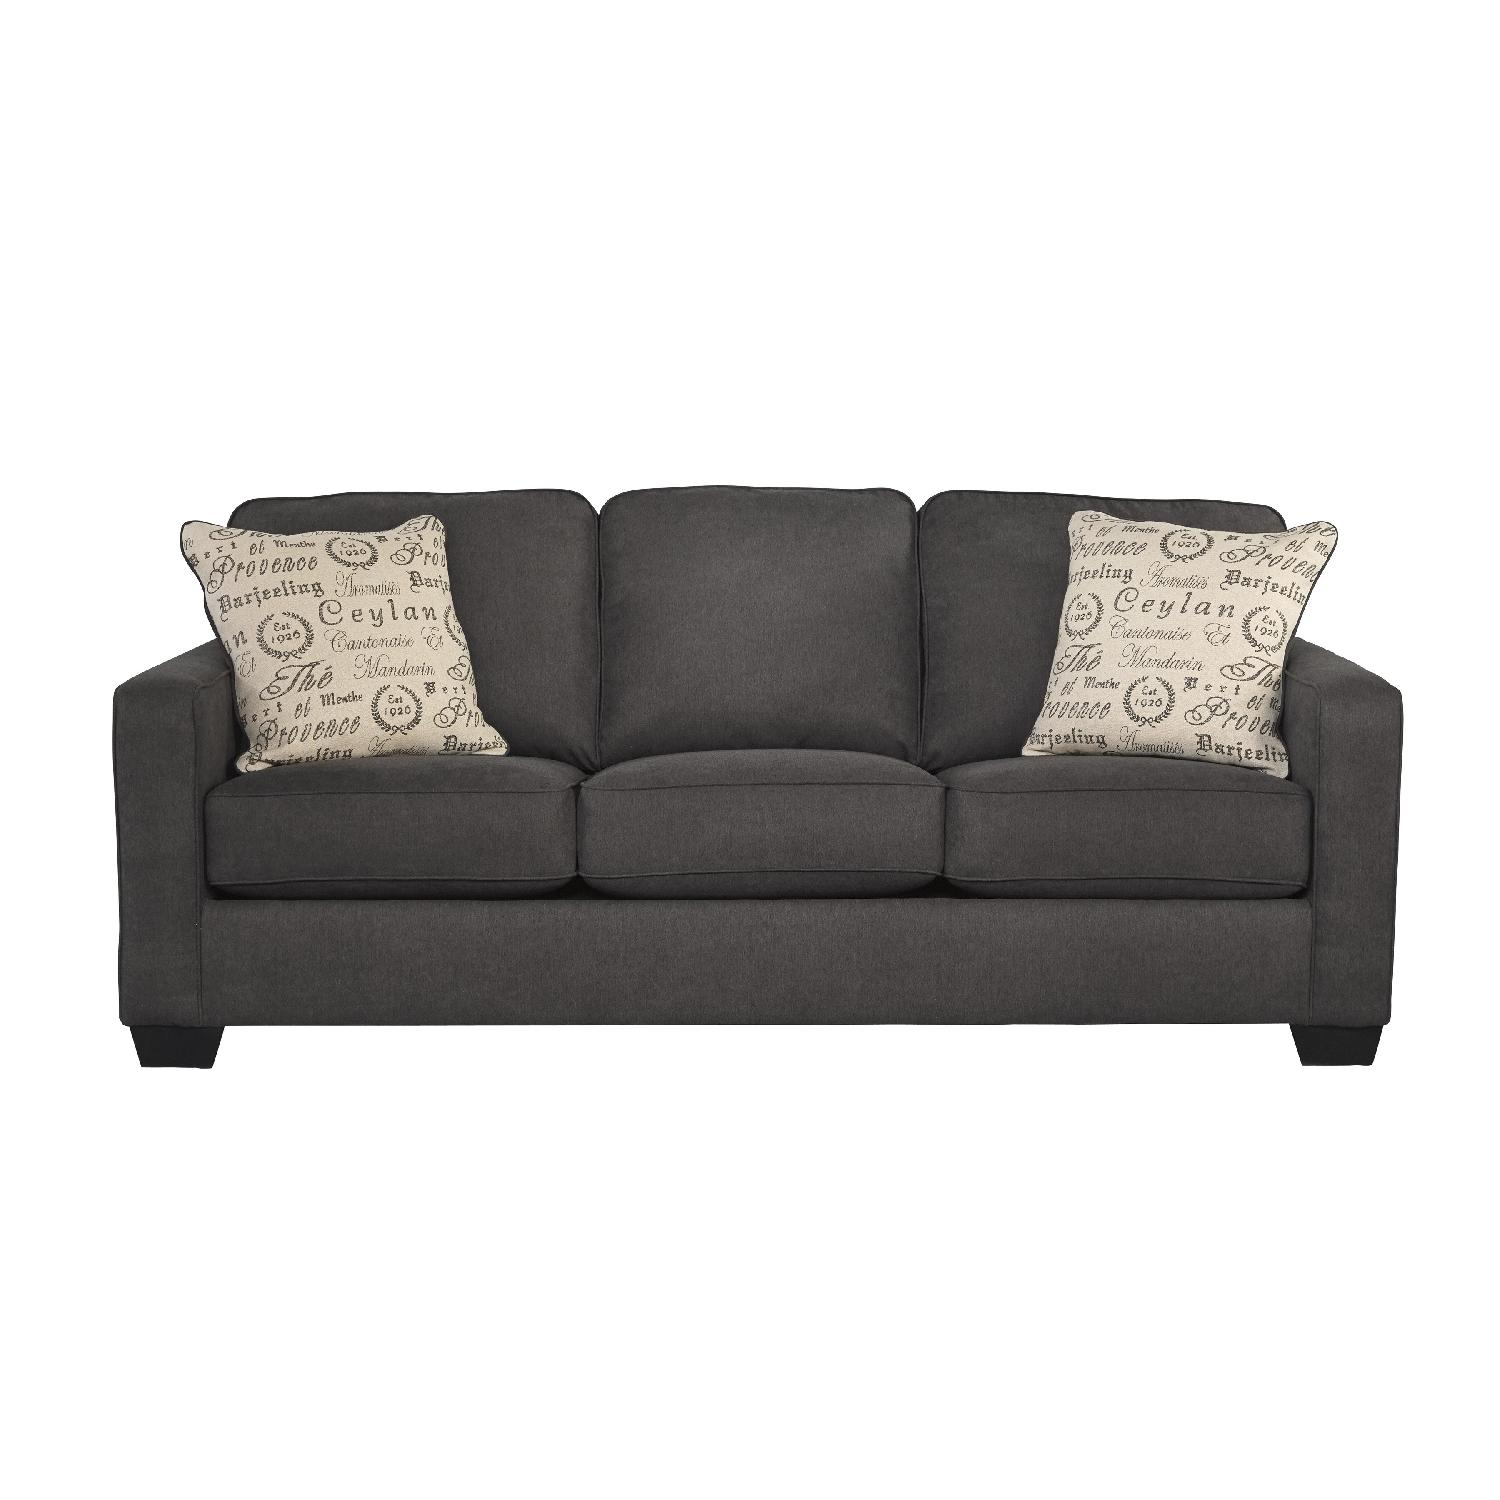 Ashley's 3 Seater Conptemporary Queen Sleeper Fabric Sofa in Charcoal Color